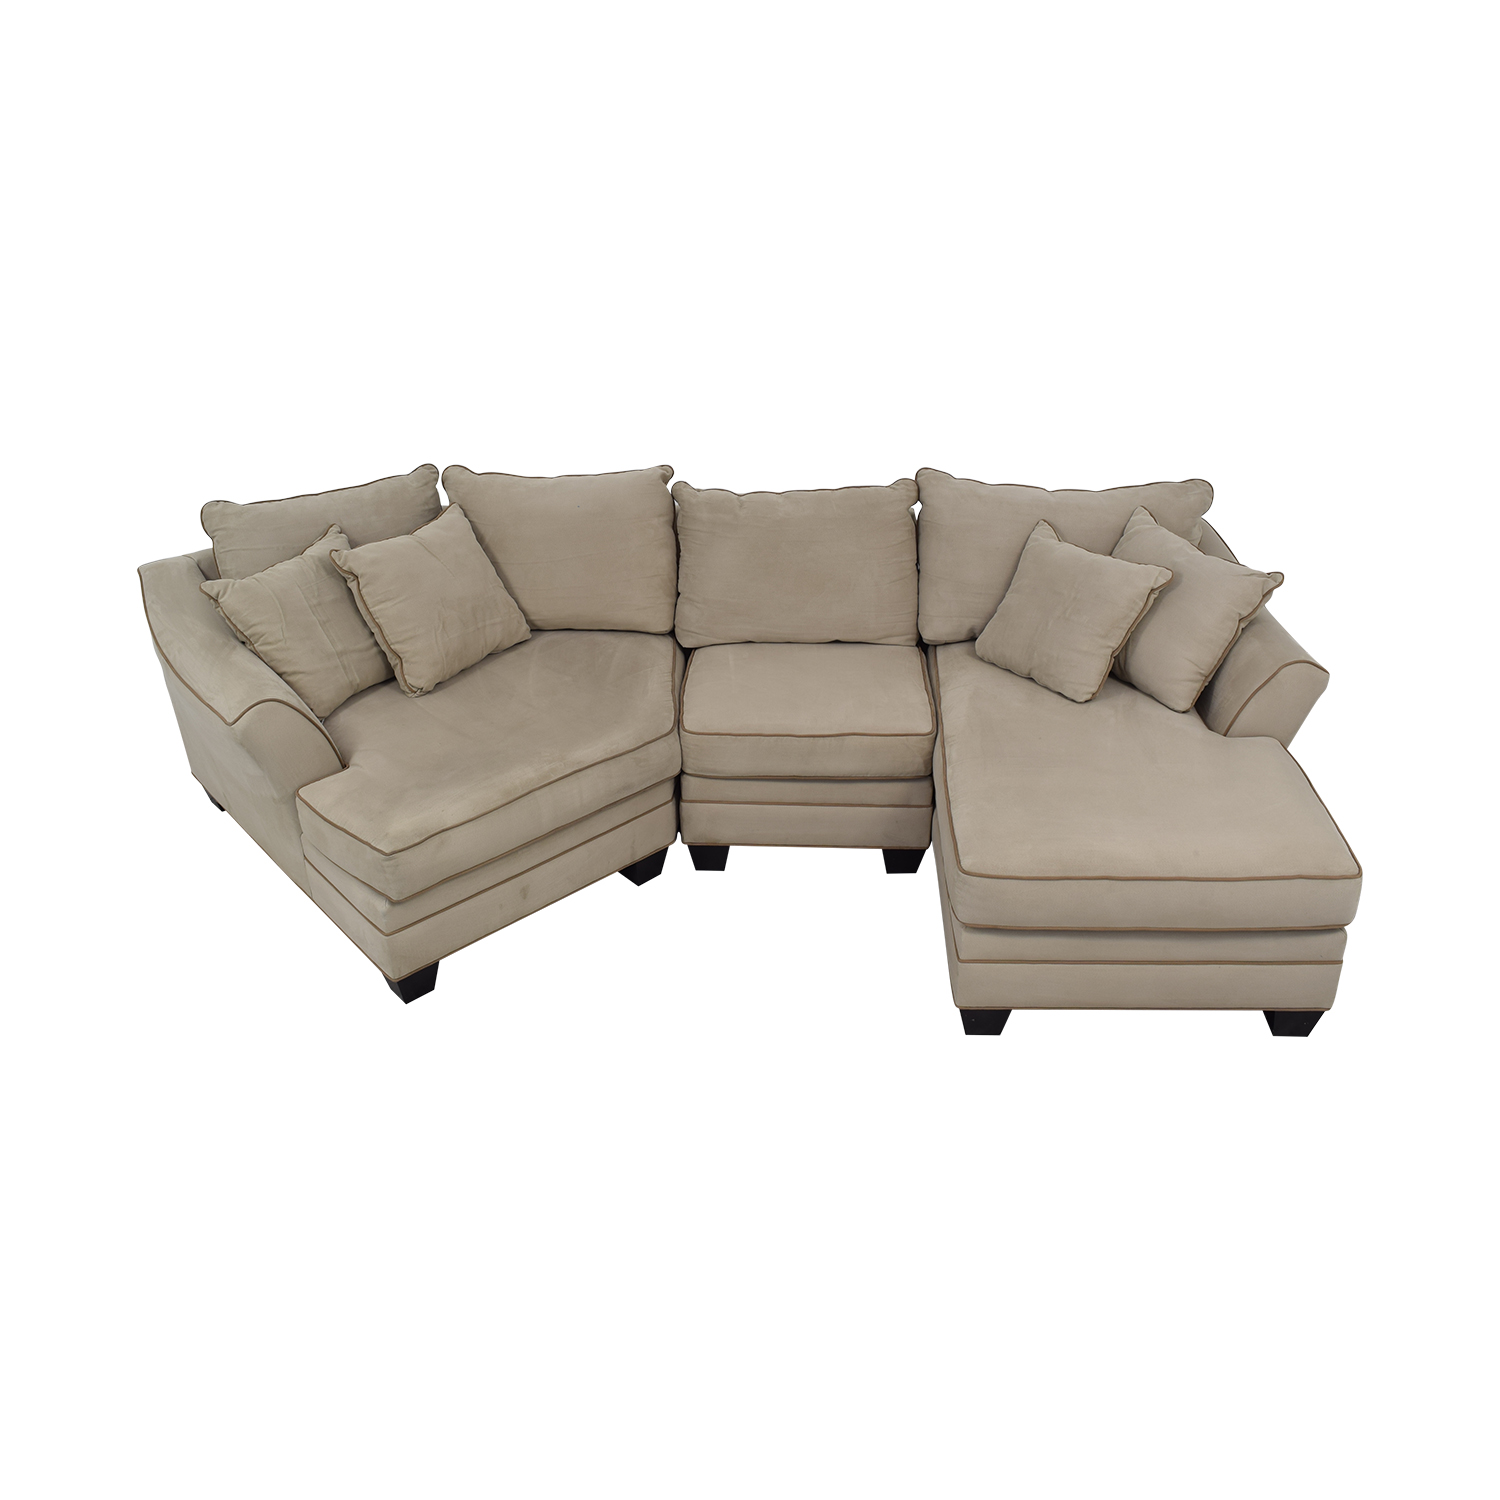 82 off raymour flanigan raymour flanigan foresthill two piece sectional sofa sofas